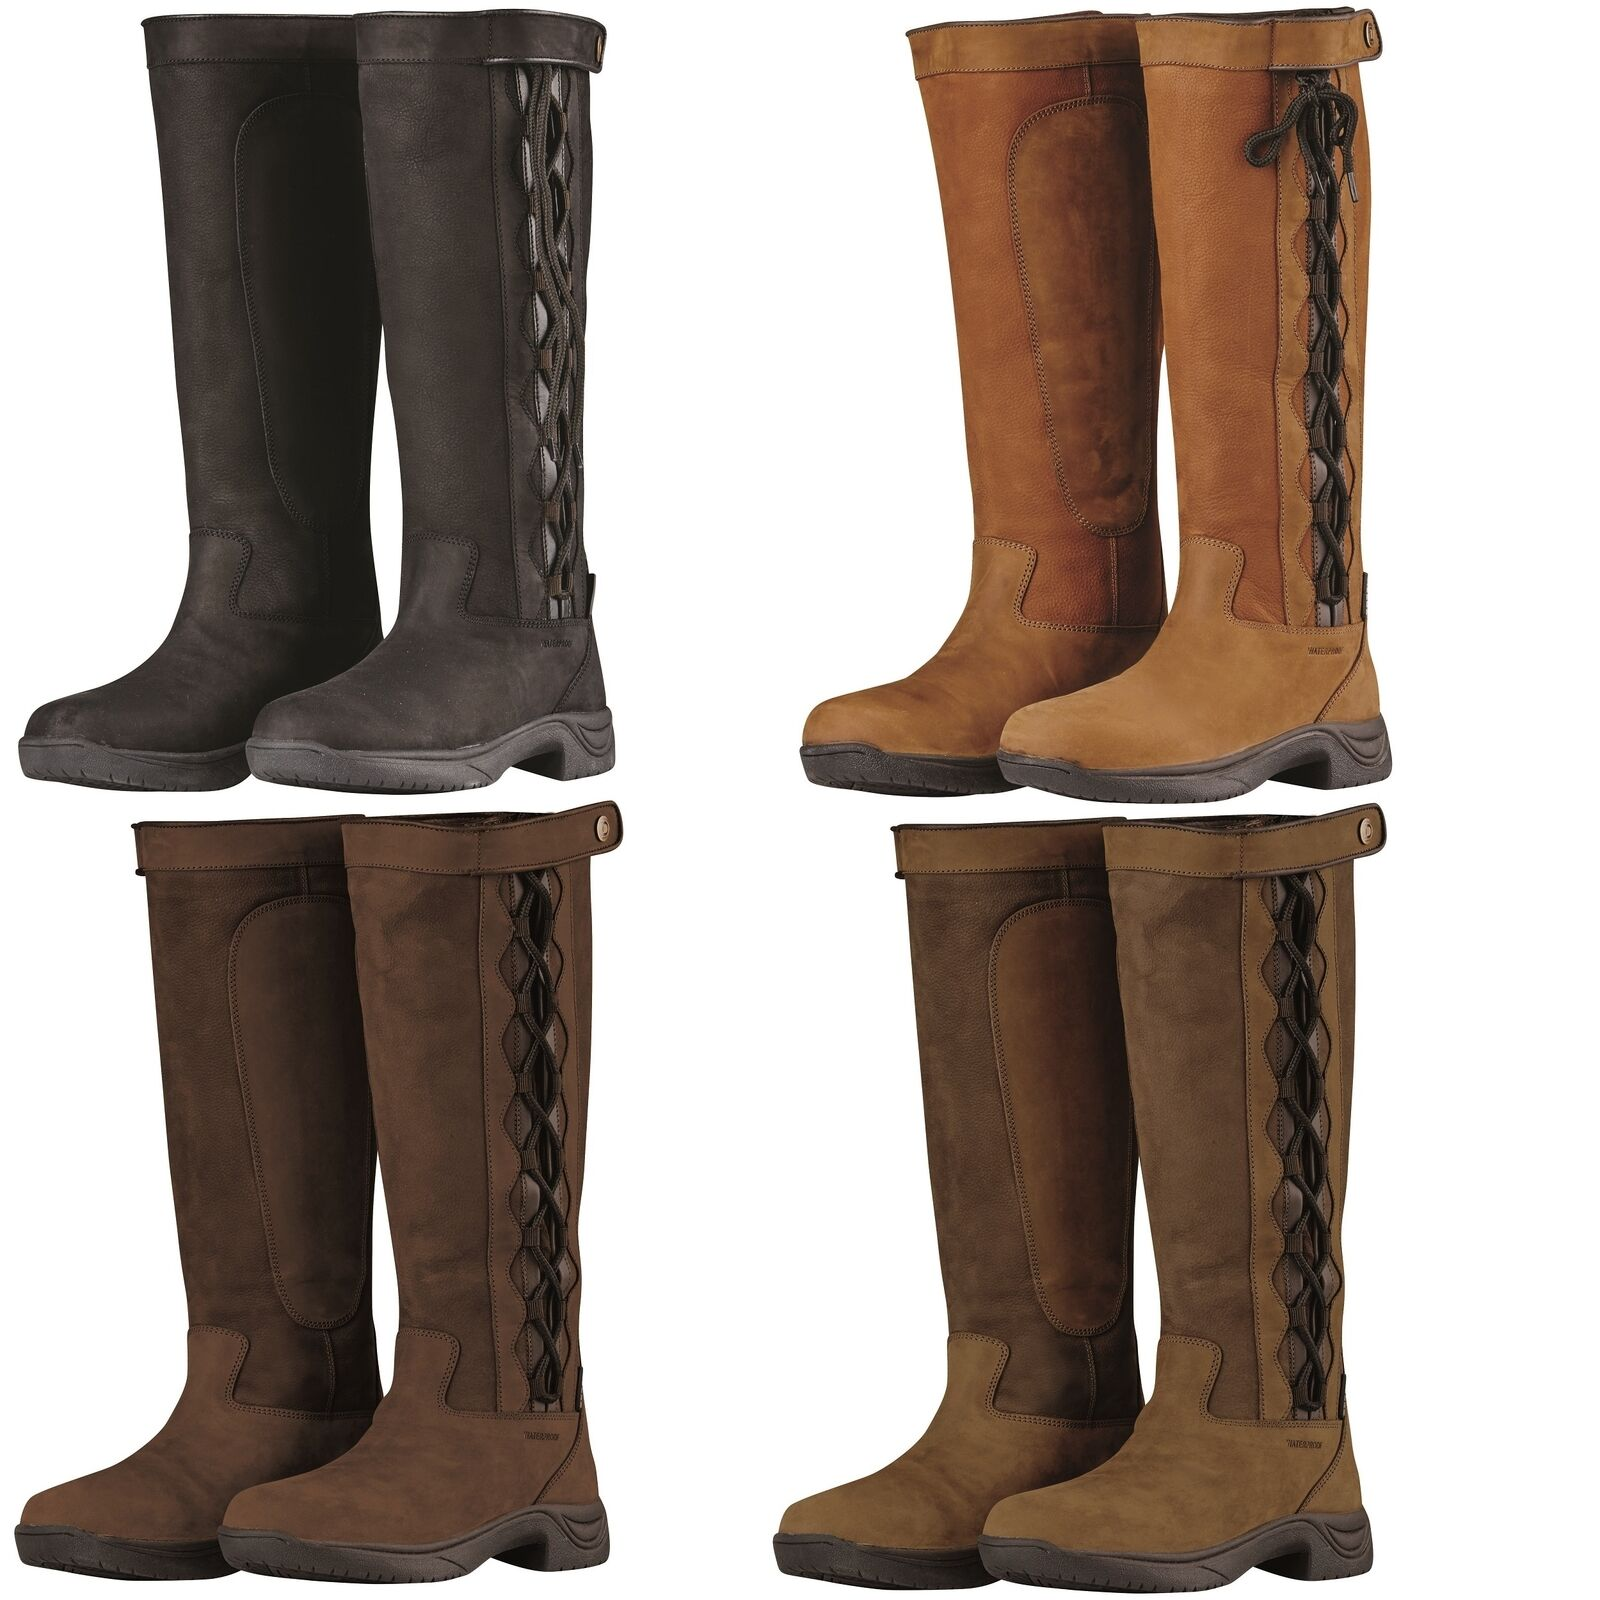 Dublin Pinnacle Country Long Leather Riding Boots WATERPROOF Boots ALL SIZES